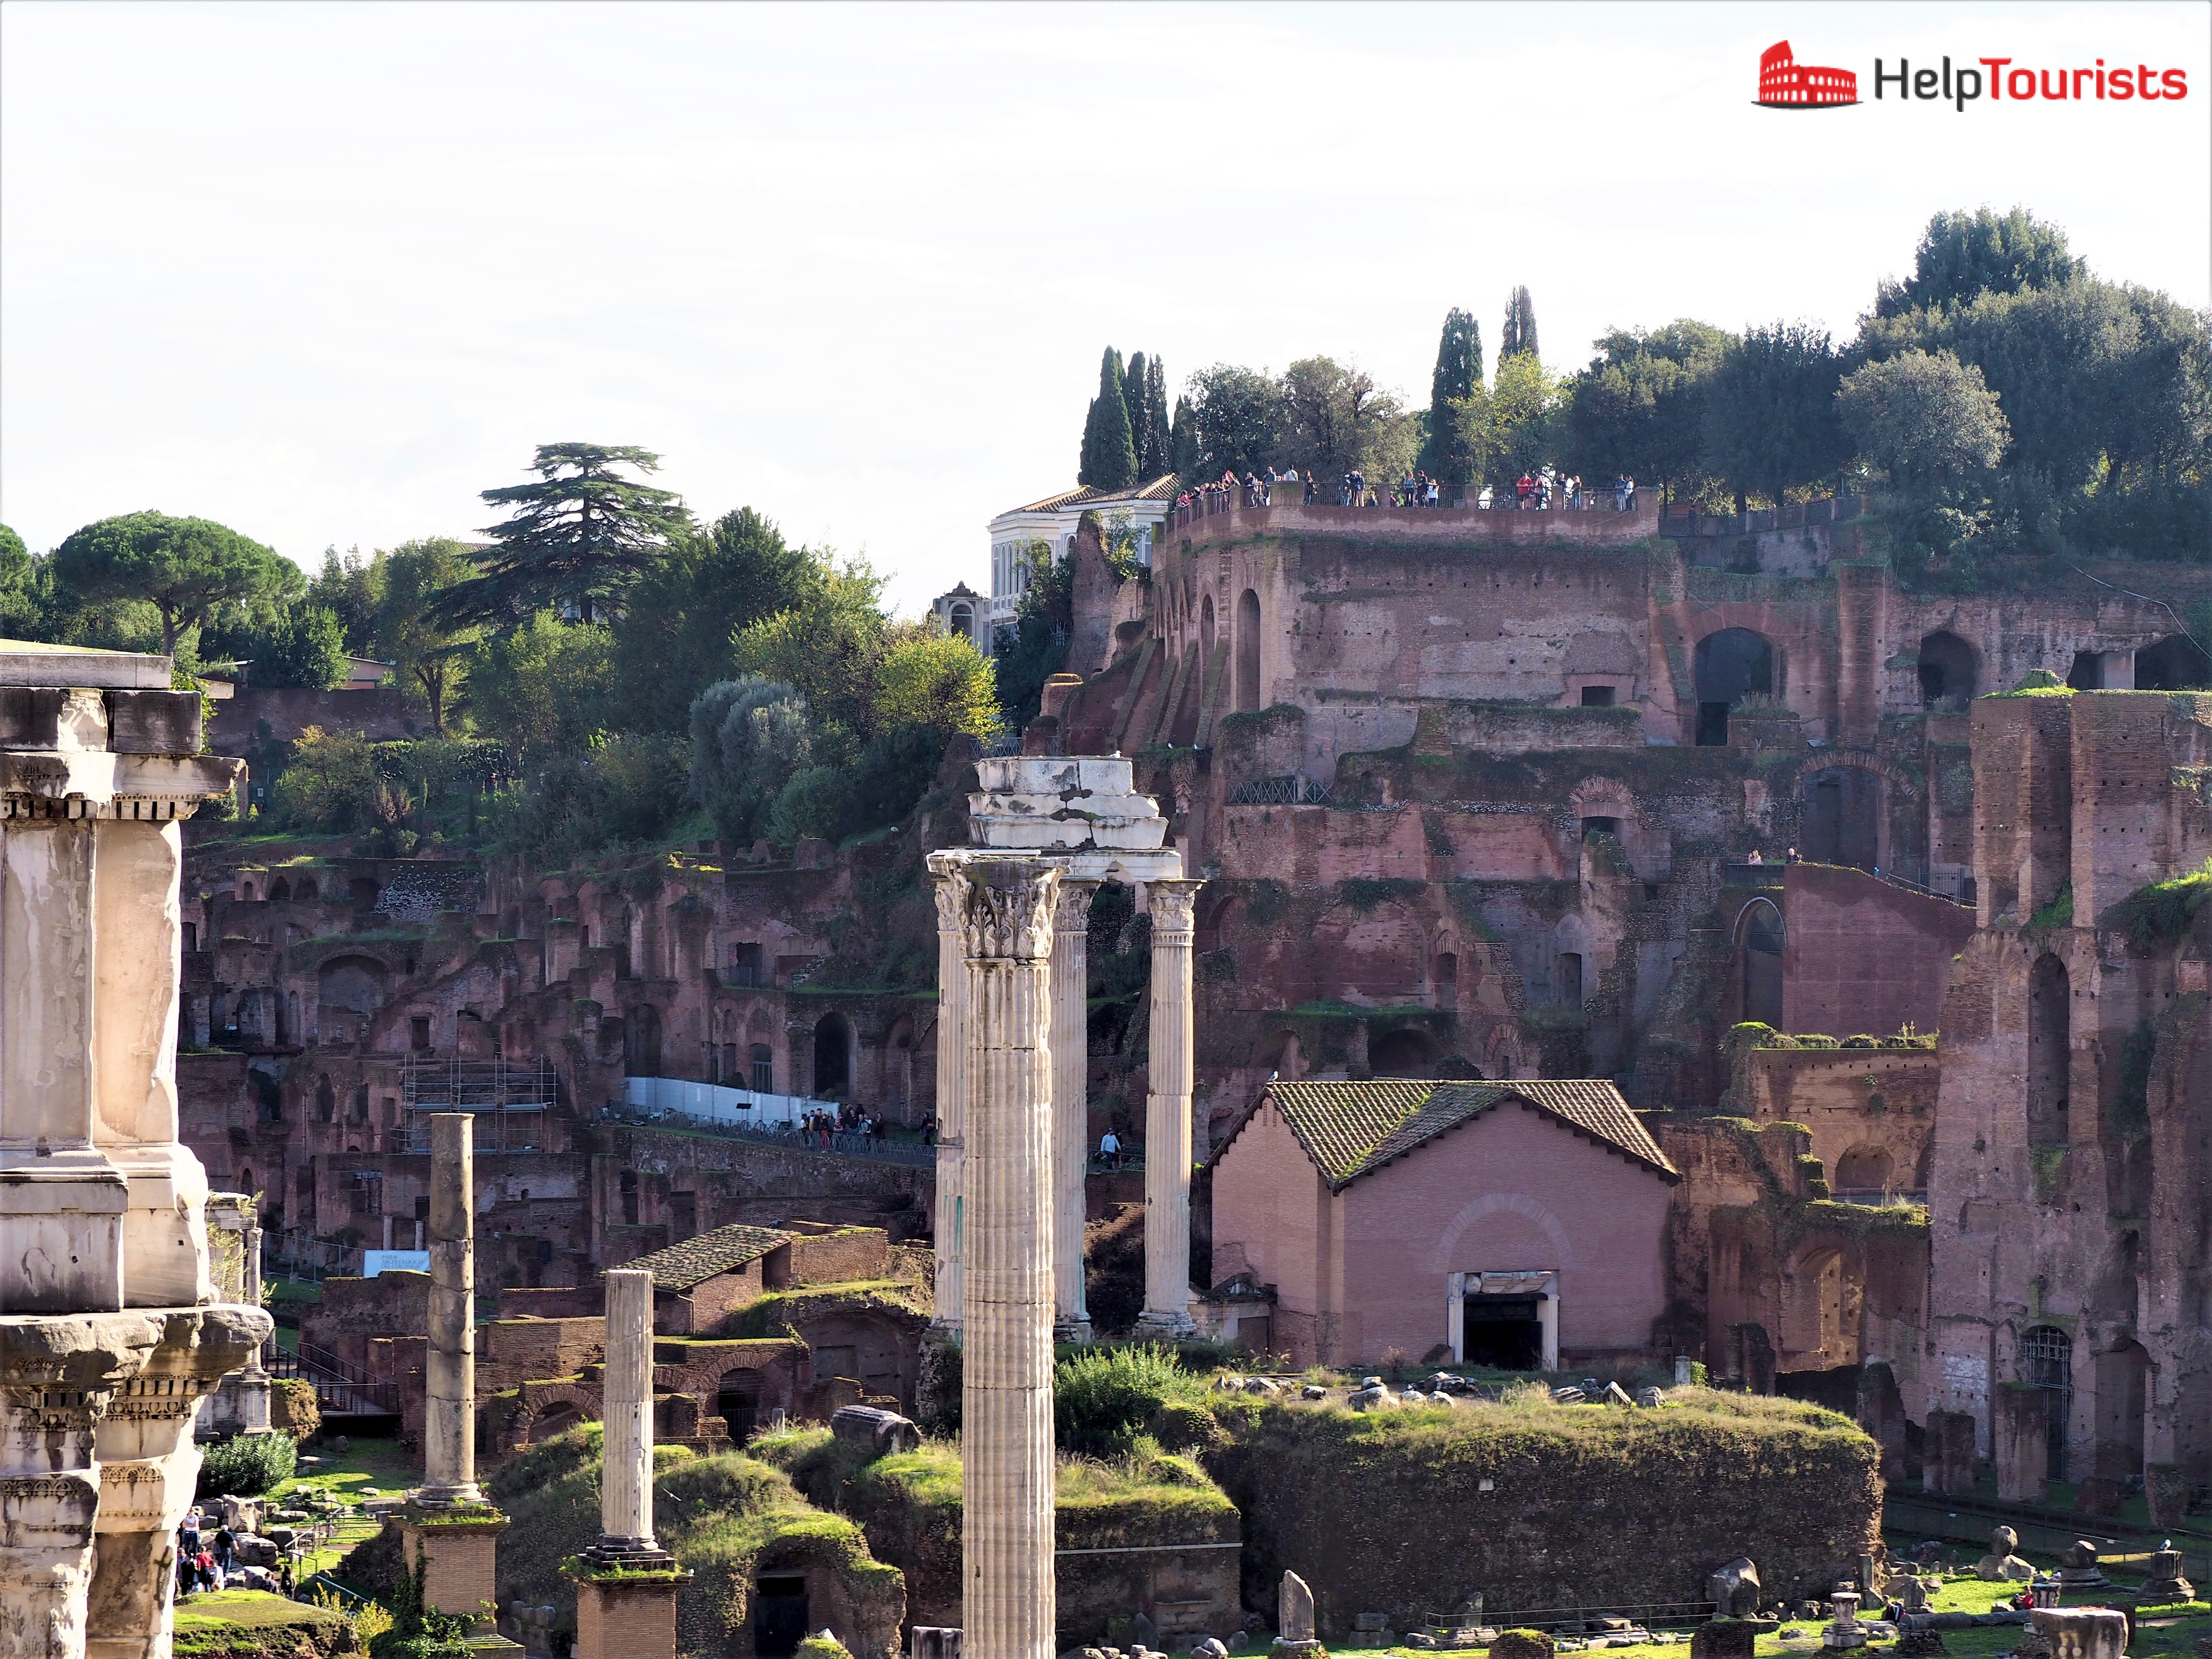 Rome 7 hills Palatine from capitol